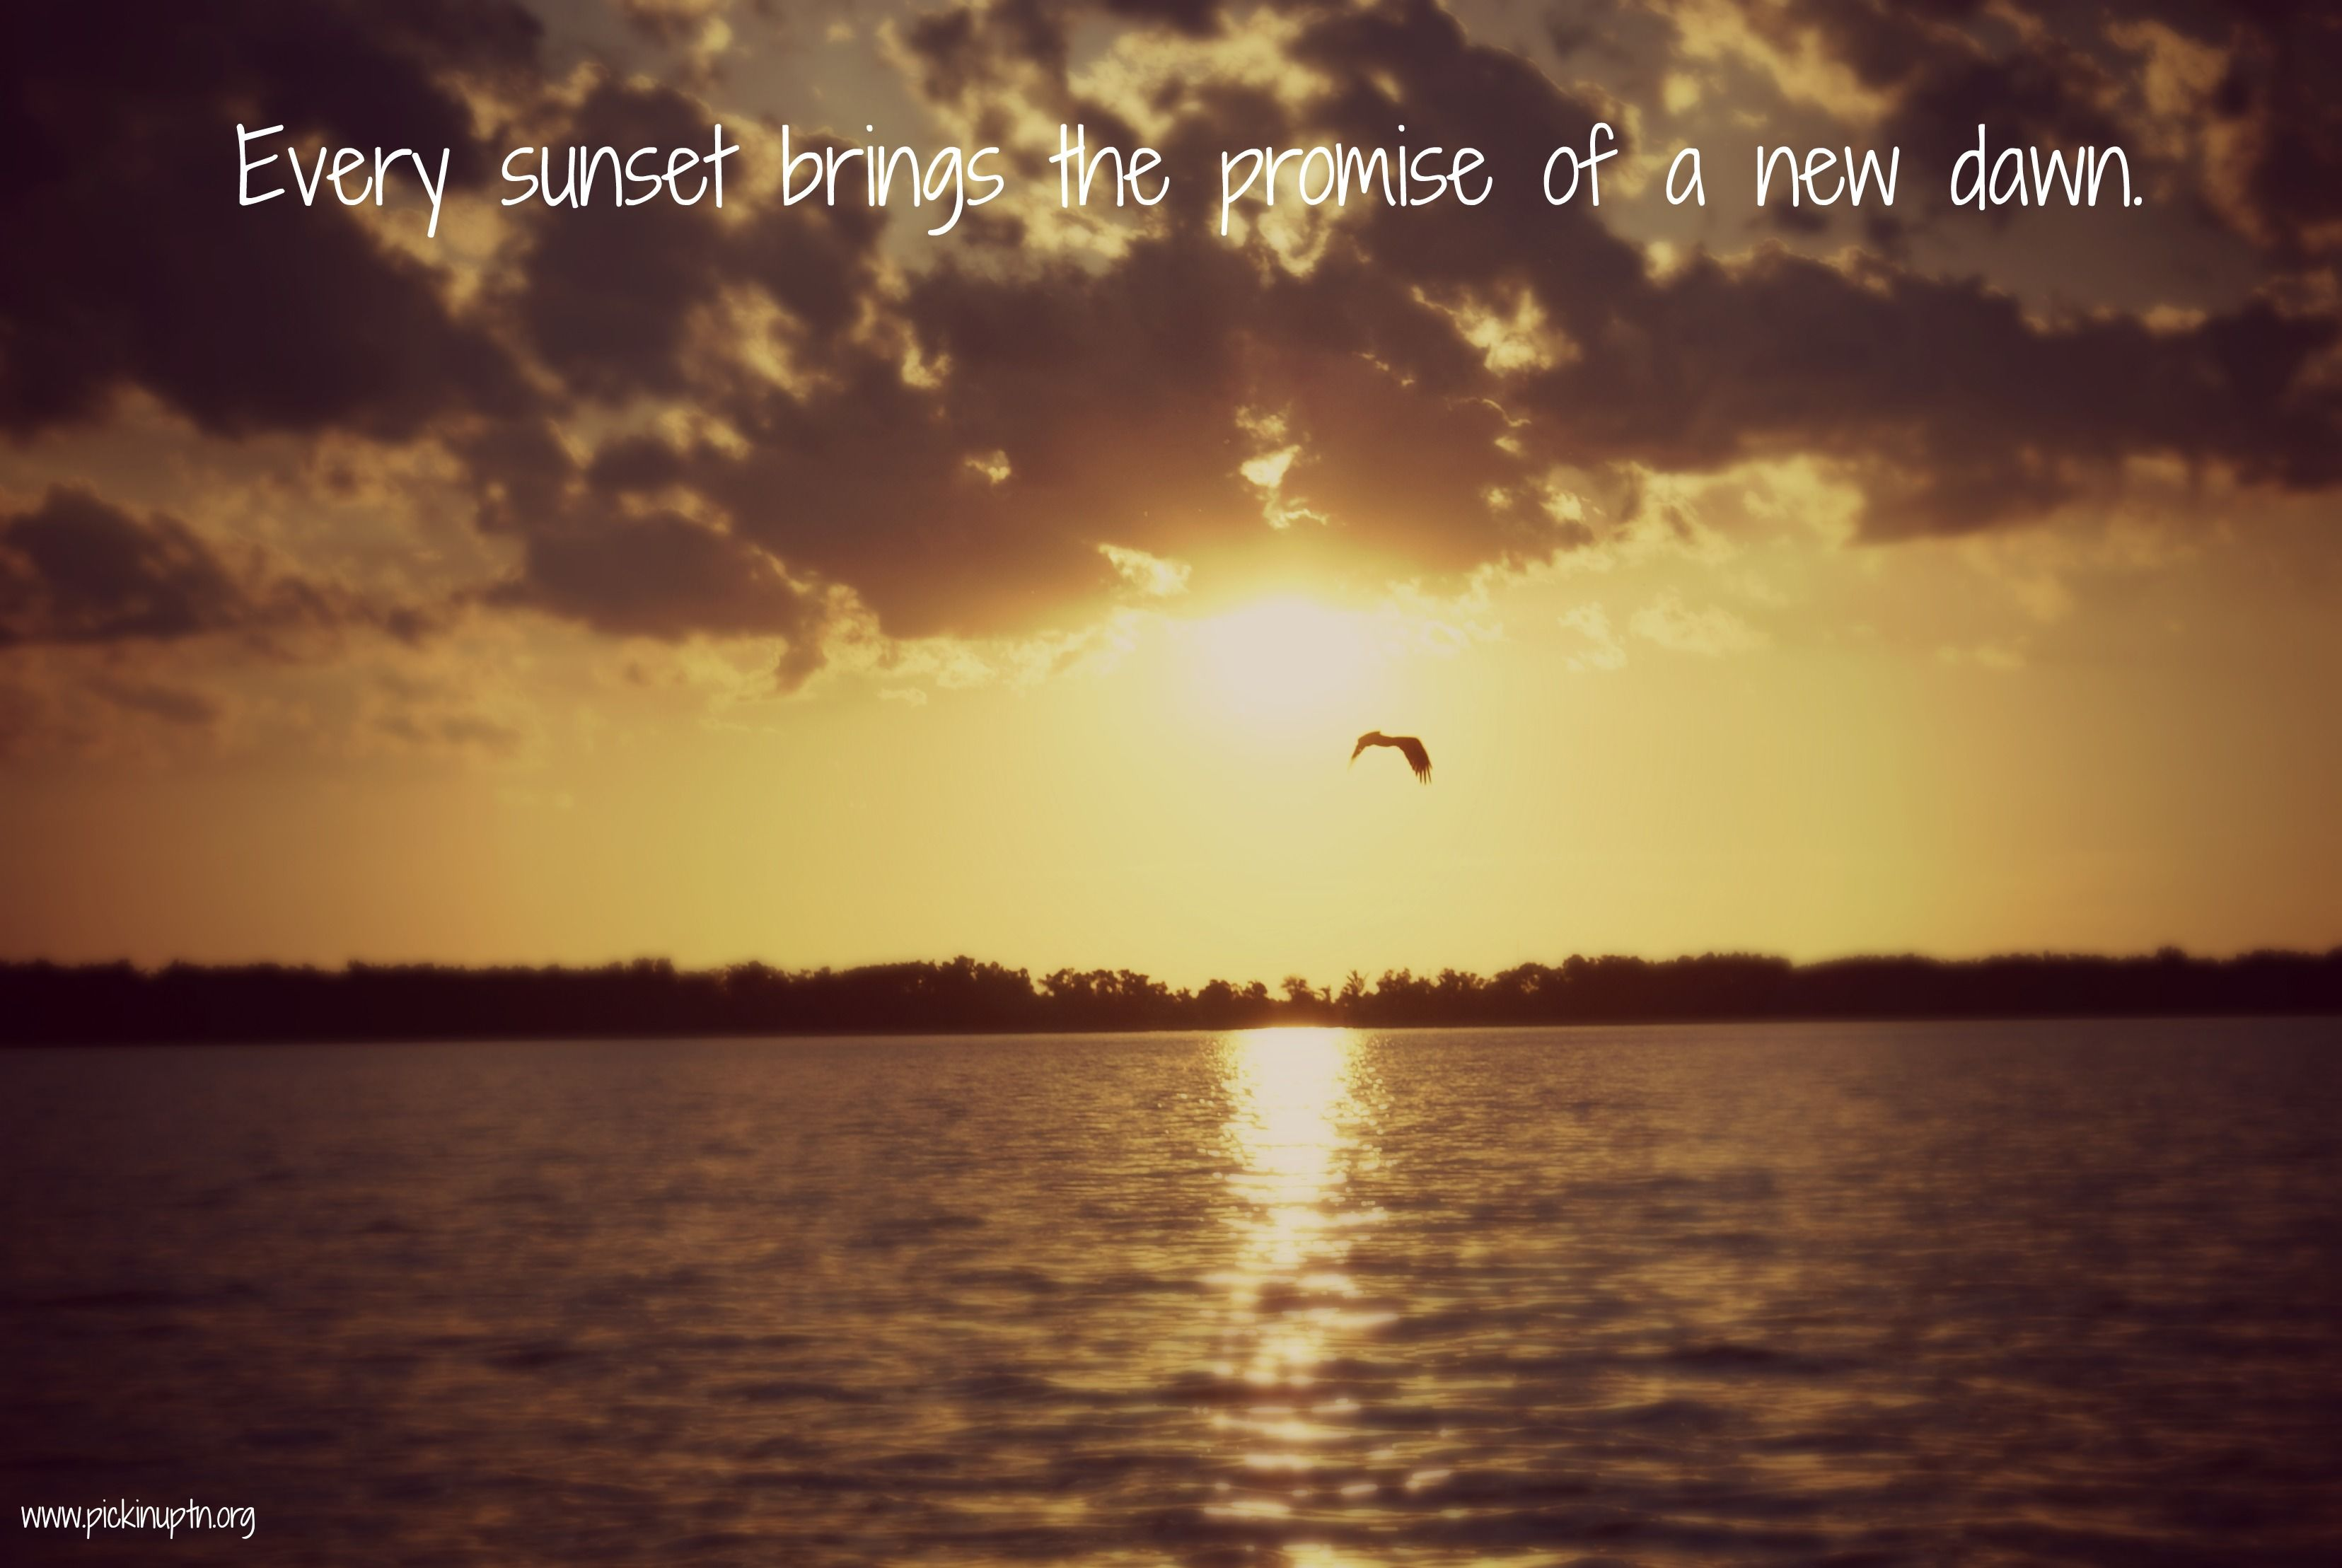 quotes dawn inspiration nature sun sunlight pknuptn